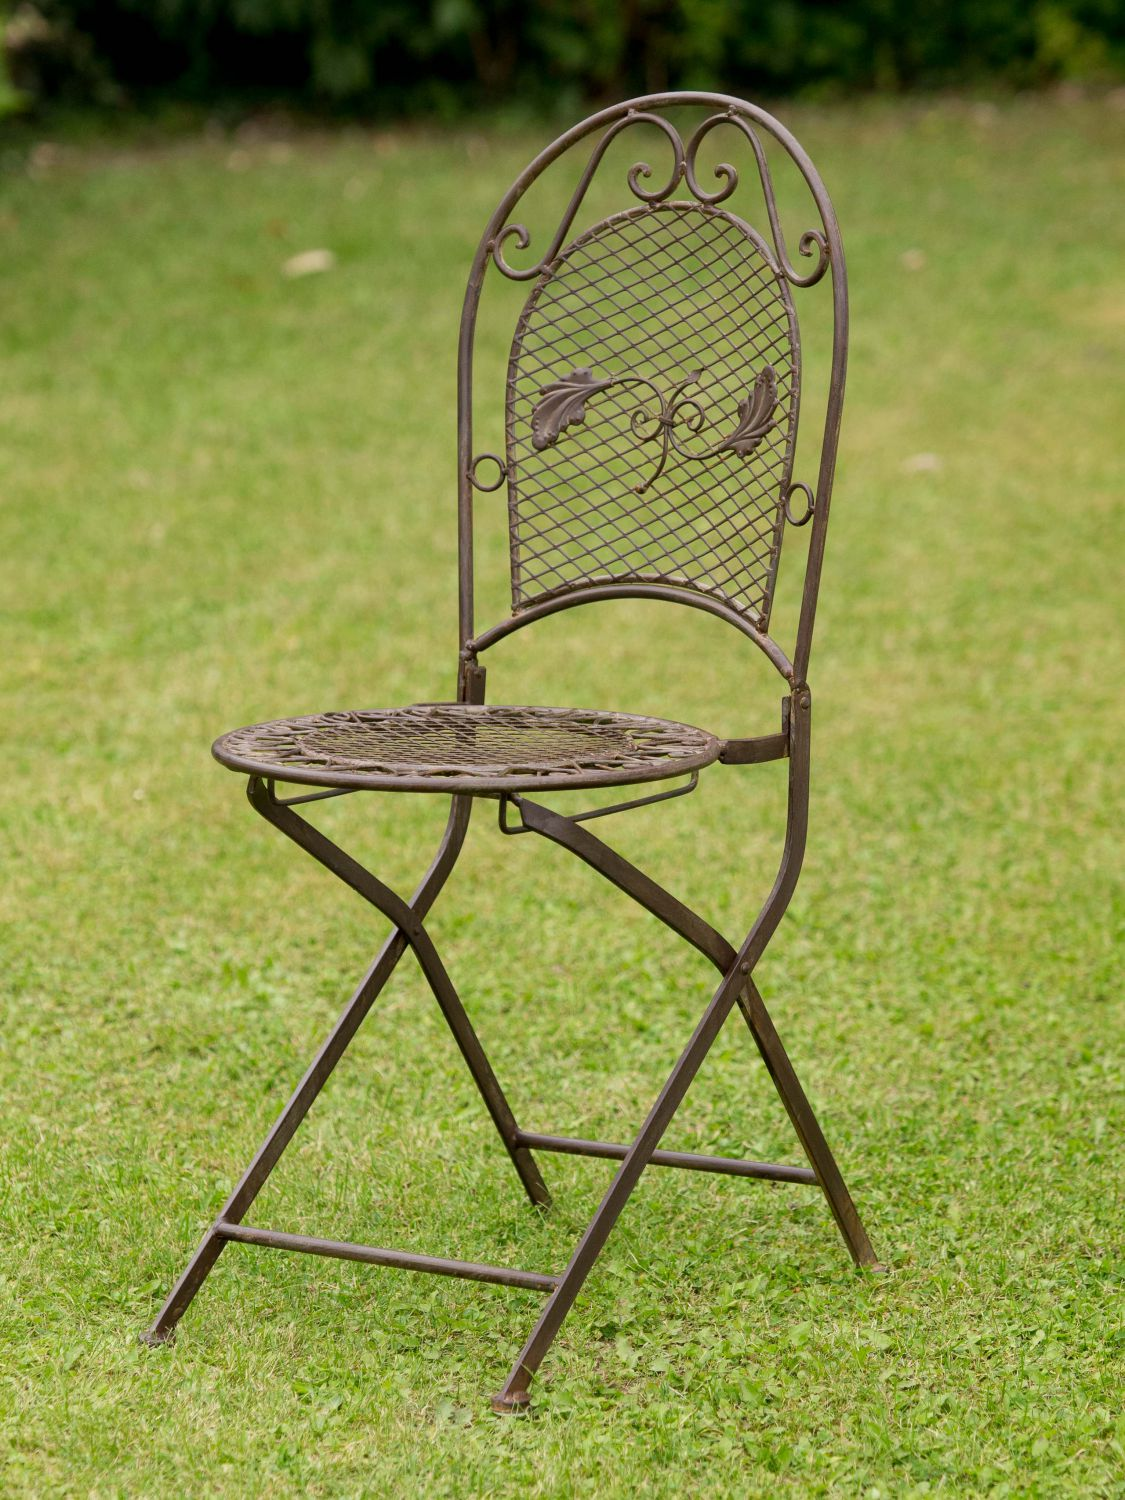 Antique style garden furniture set table 2 chairs wrought iron brown ebay Vintage metal garden furniture